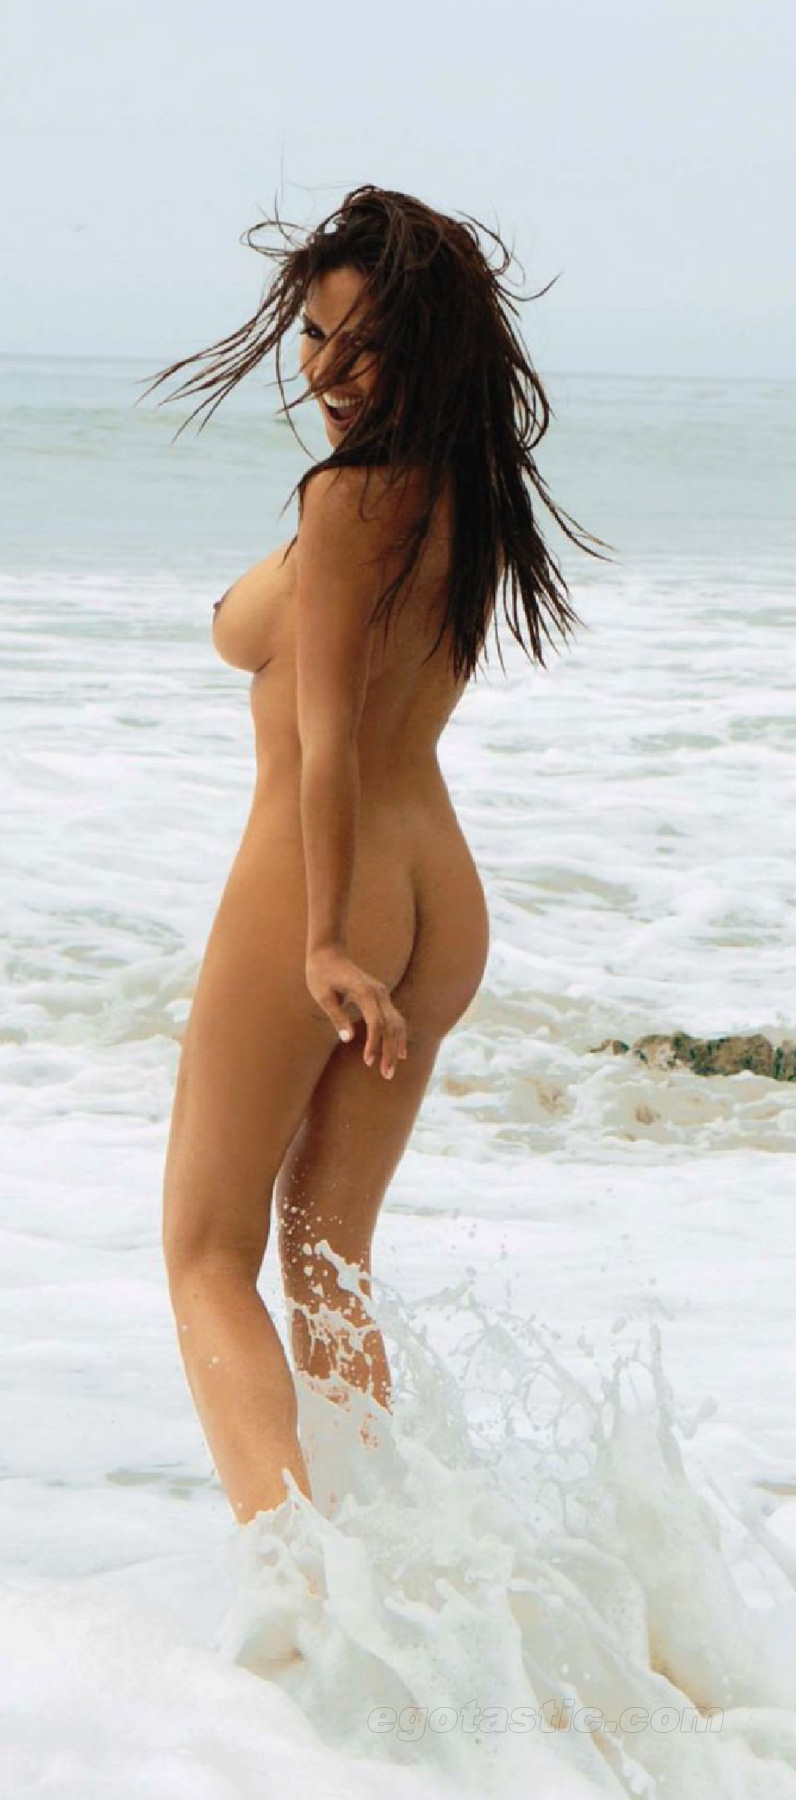 from Corbin leeanne tweeden nude in playboy